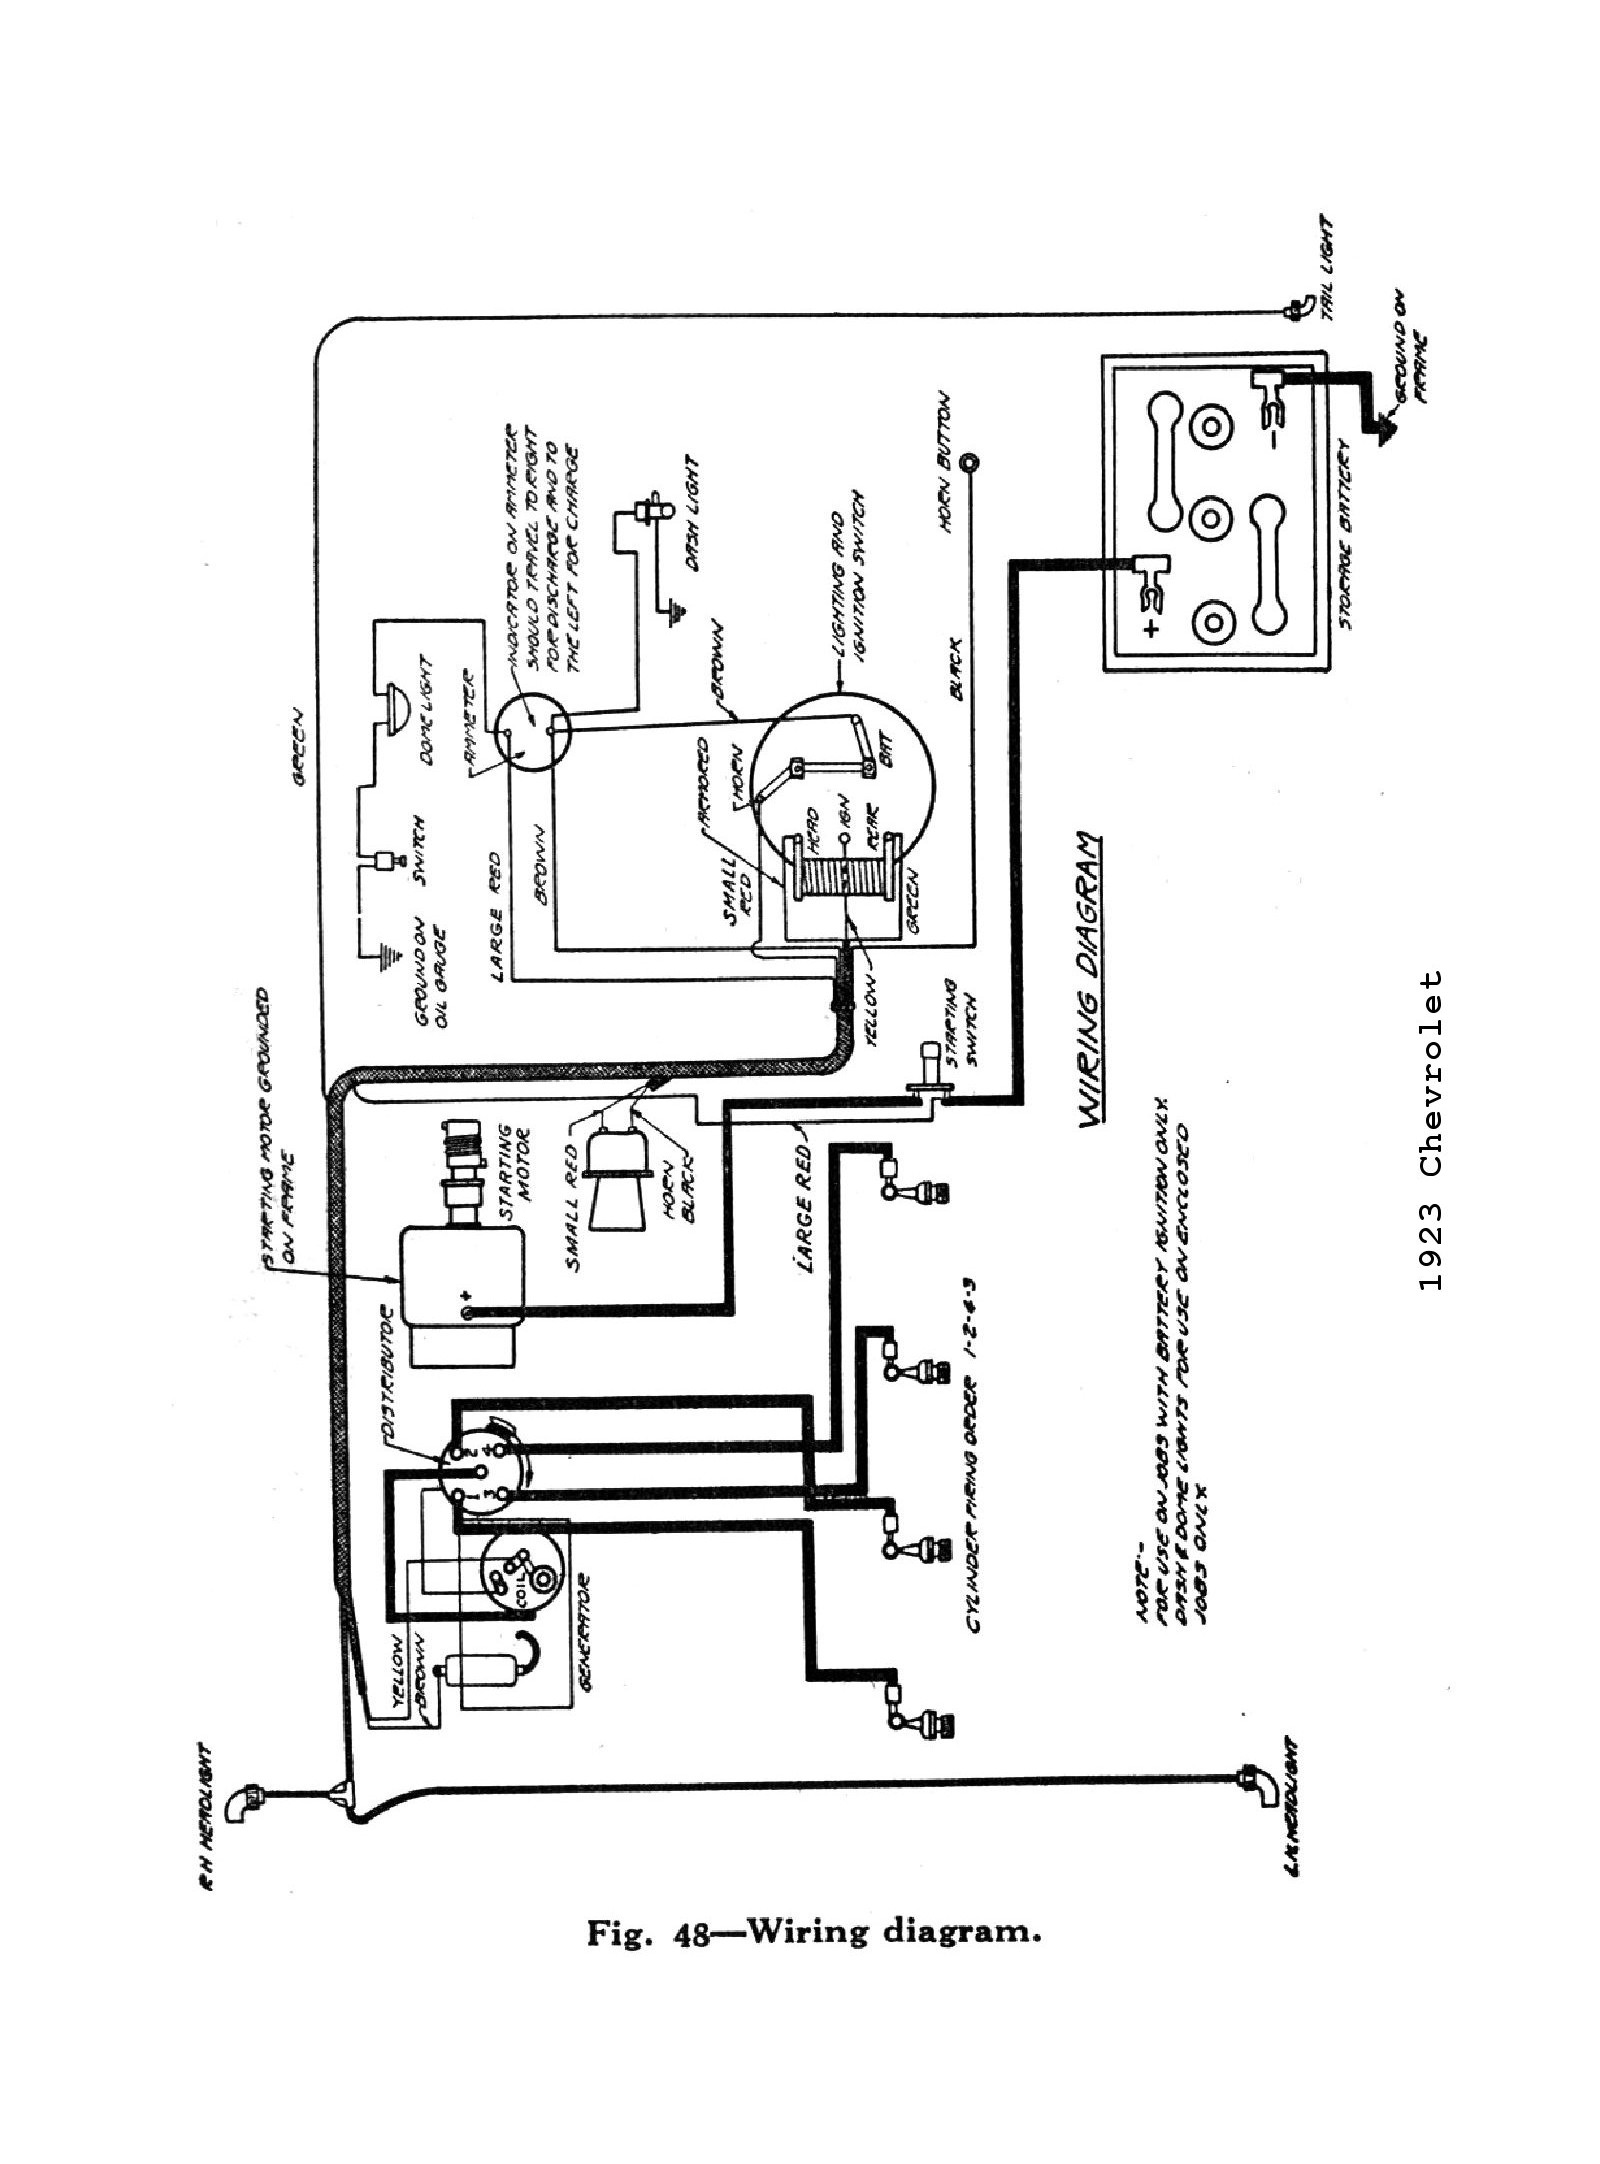 Altwire together with Thunderbird Vacuum Trunk Lock Diagram together with Suzuki Dr L Optional Mediumsue Fig F further Wiring Diagram besides Squarebirdvinnumberlocations. on 1960 ford thunderbird wiring diagram